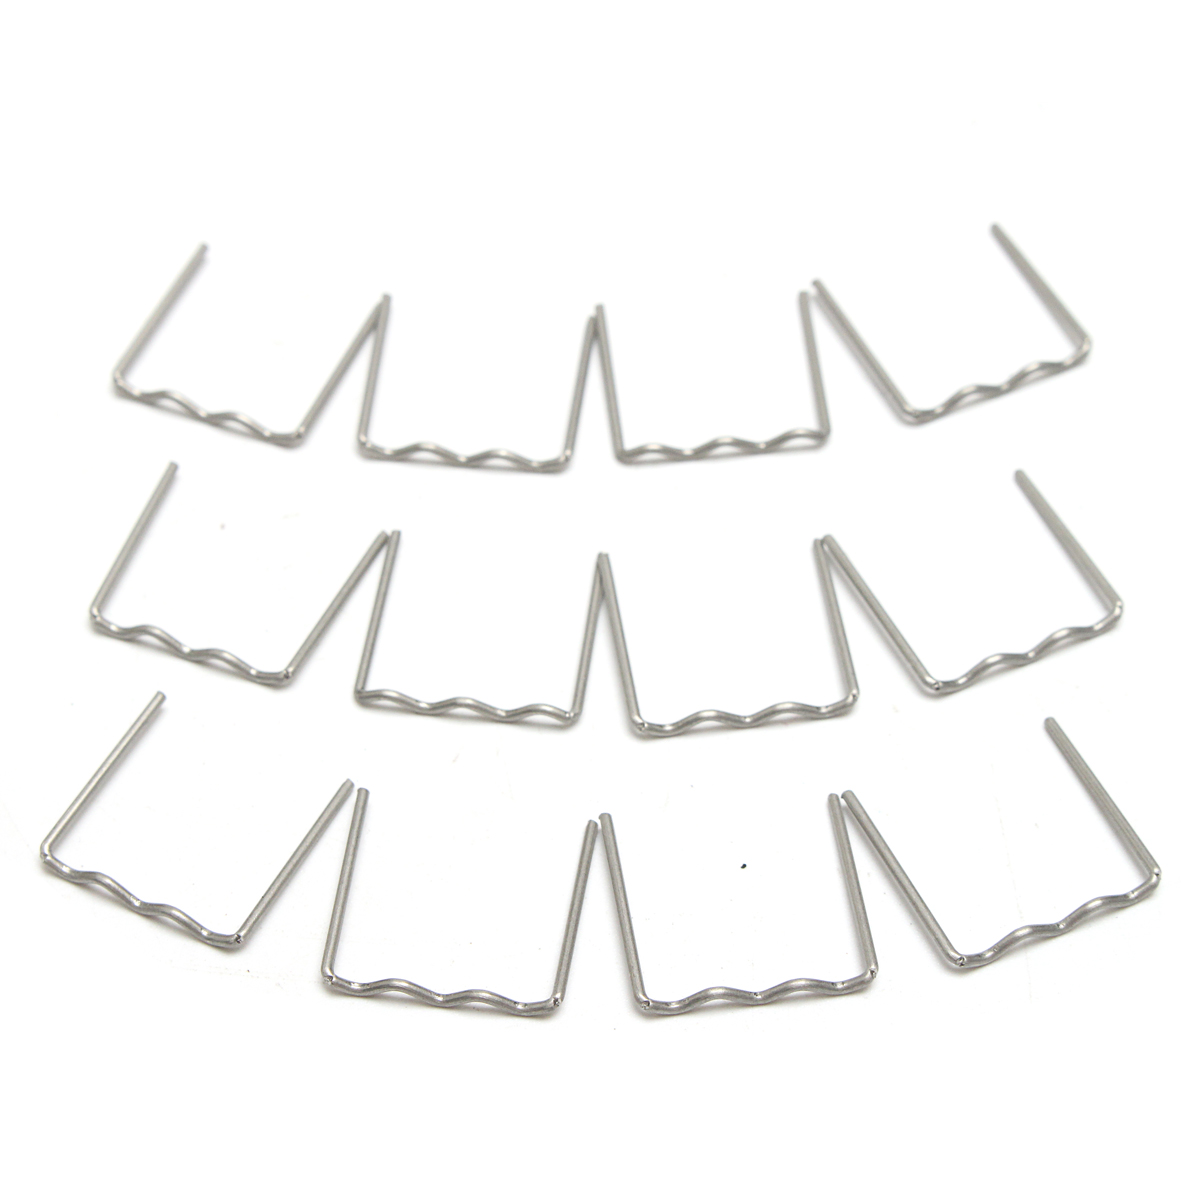 100PCS Pre Cut Flat Staples 0.8mm For Hot Plastic Staple Repair Tool For Car Repair